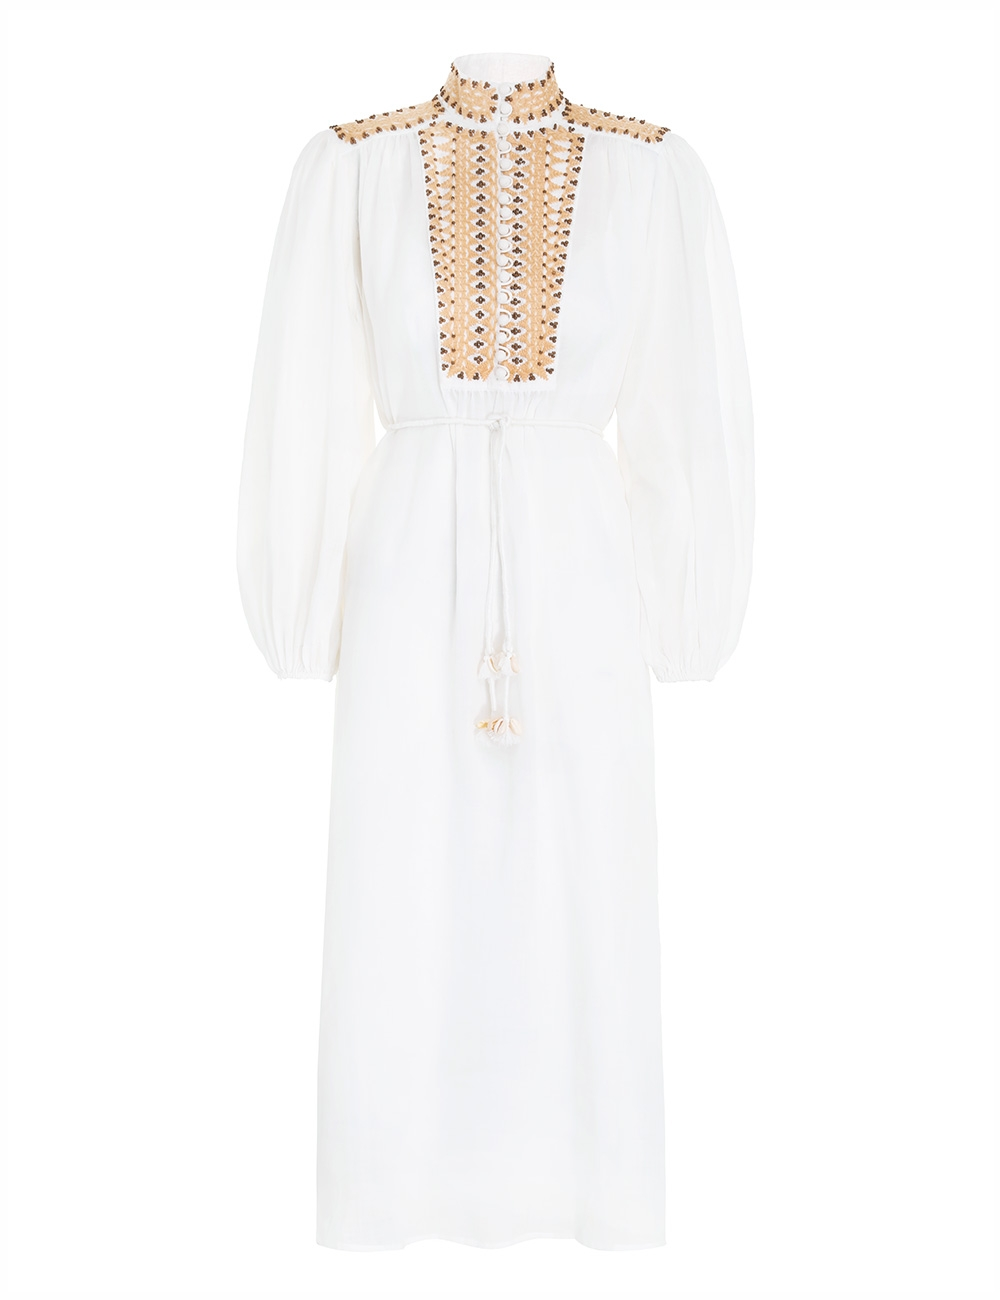 Brighton Beaded Yoke Dress